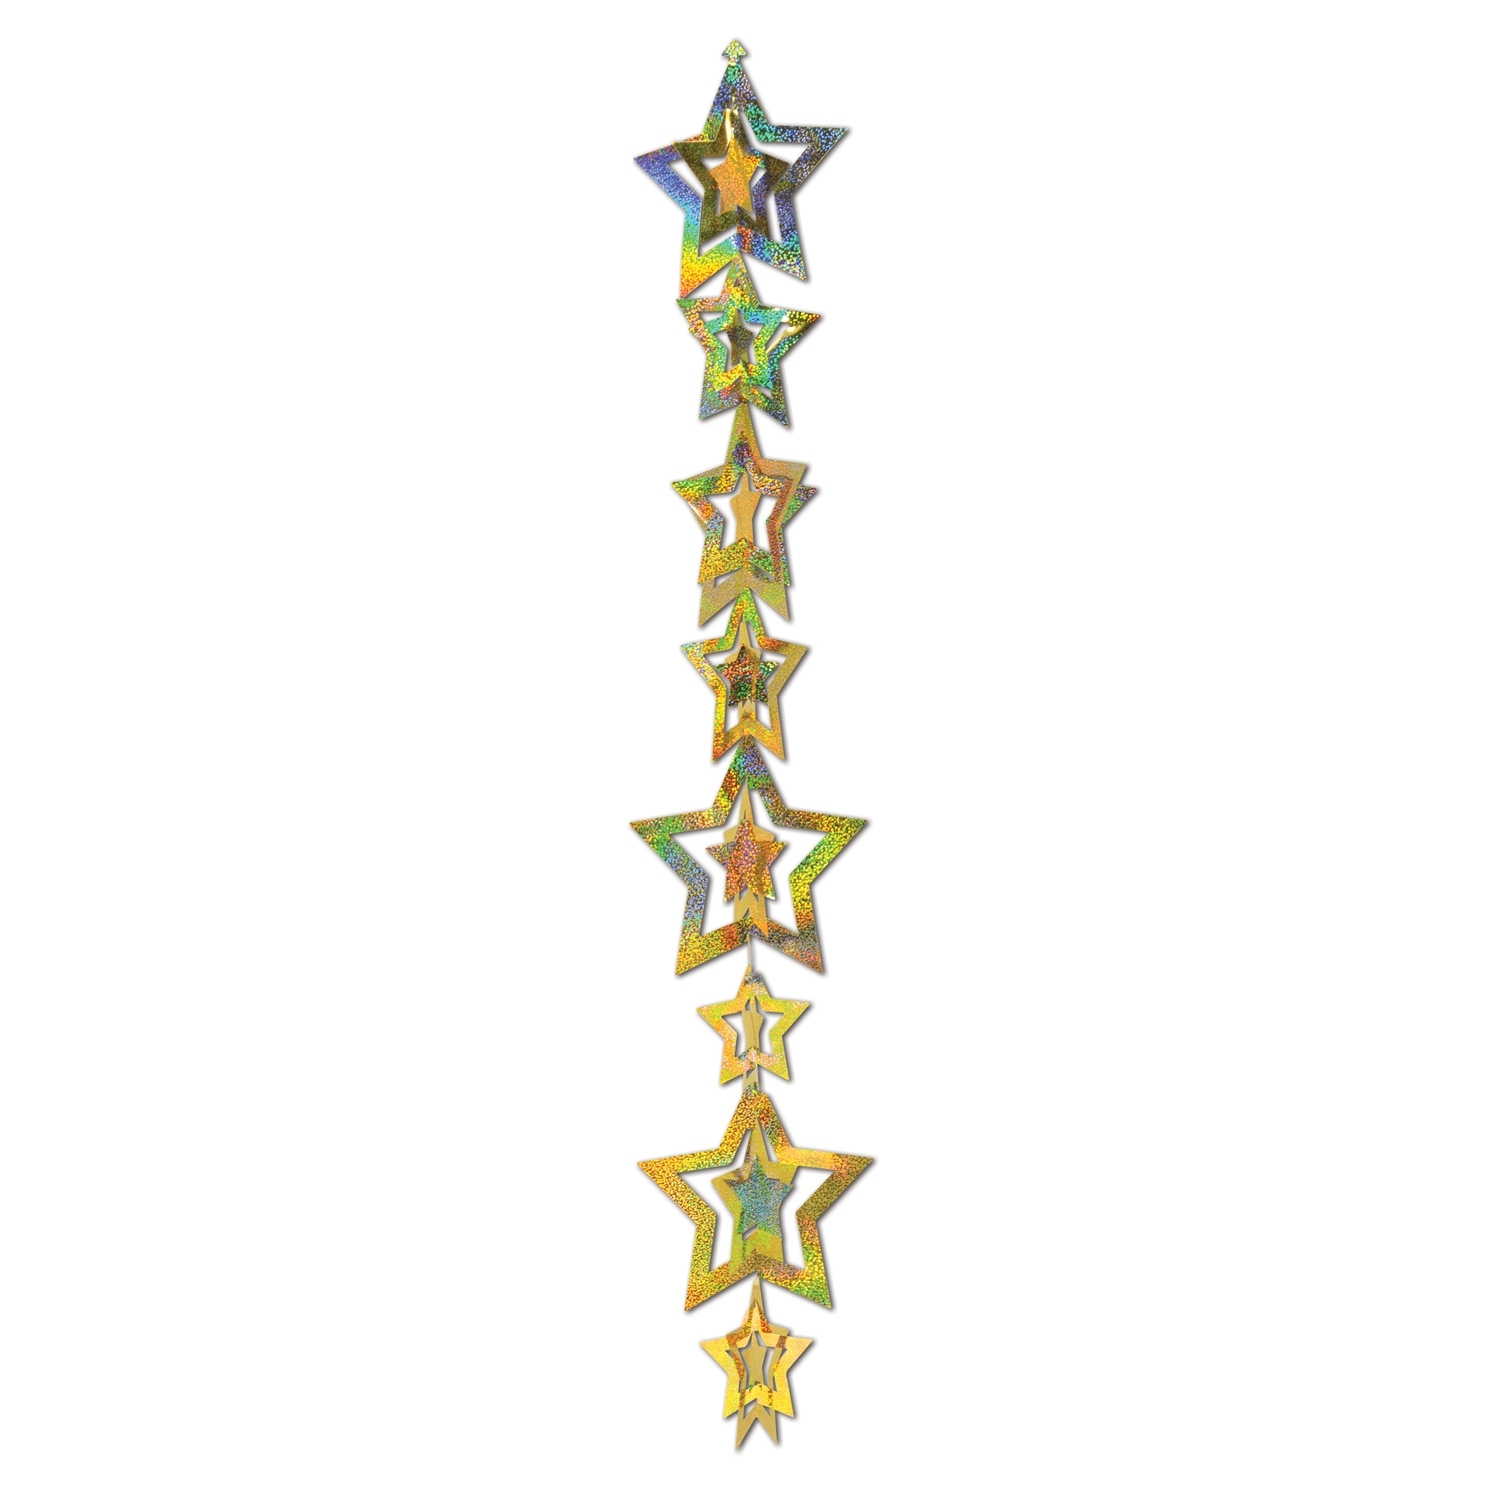 Dangling decoration with various sized 3-d gold prismatic stars.